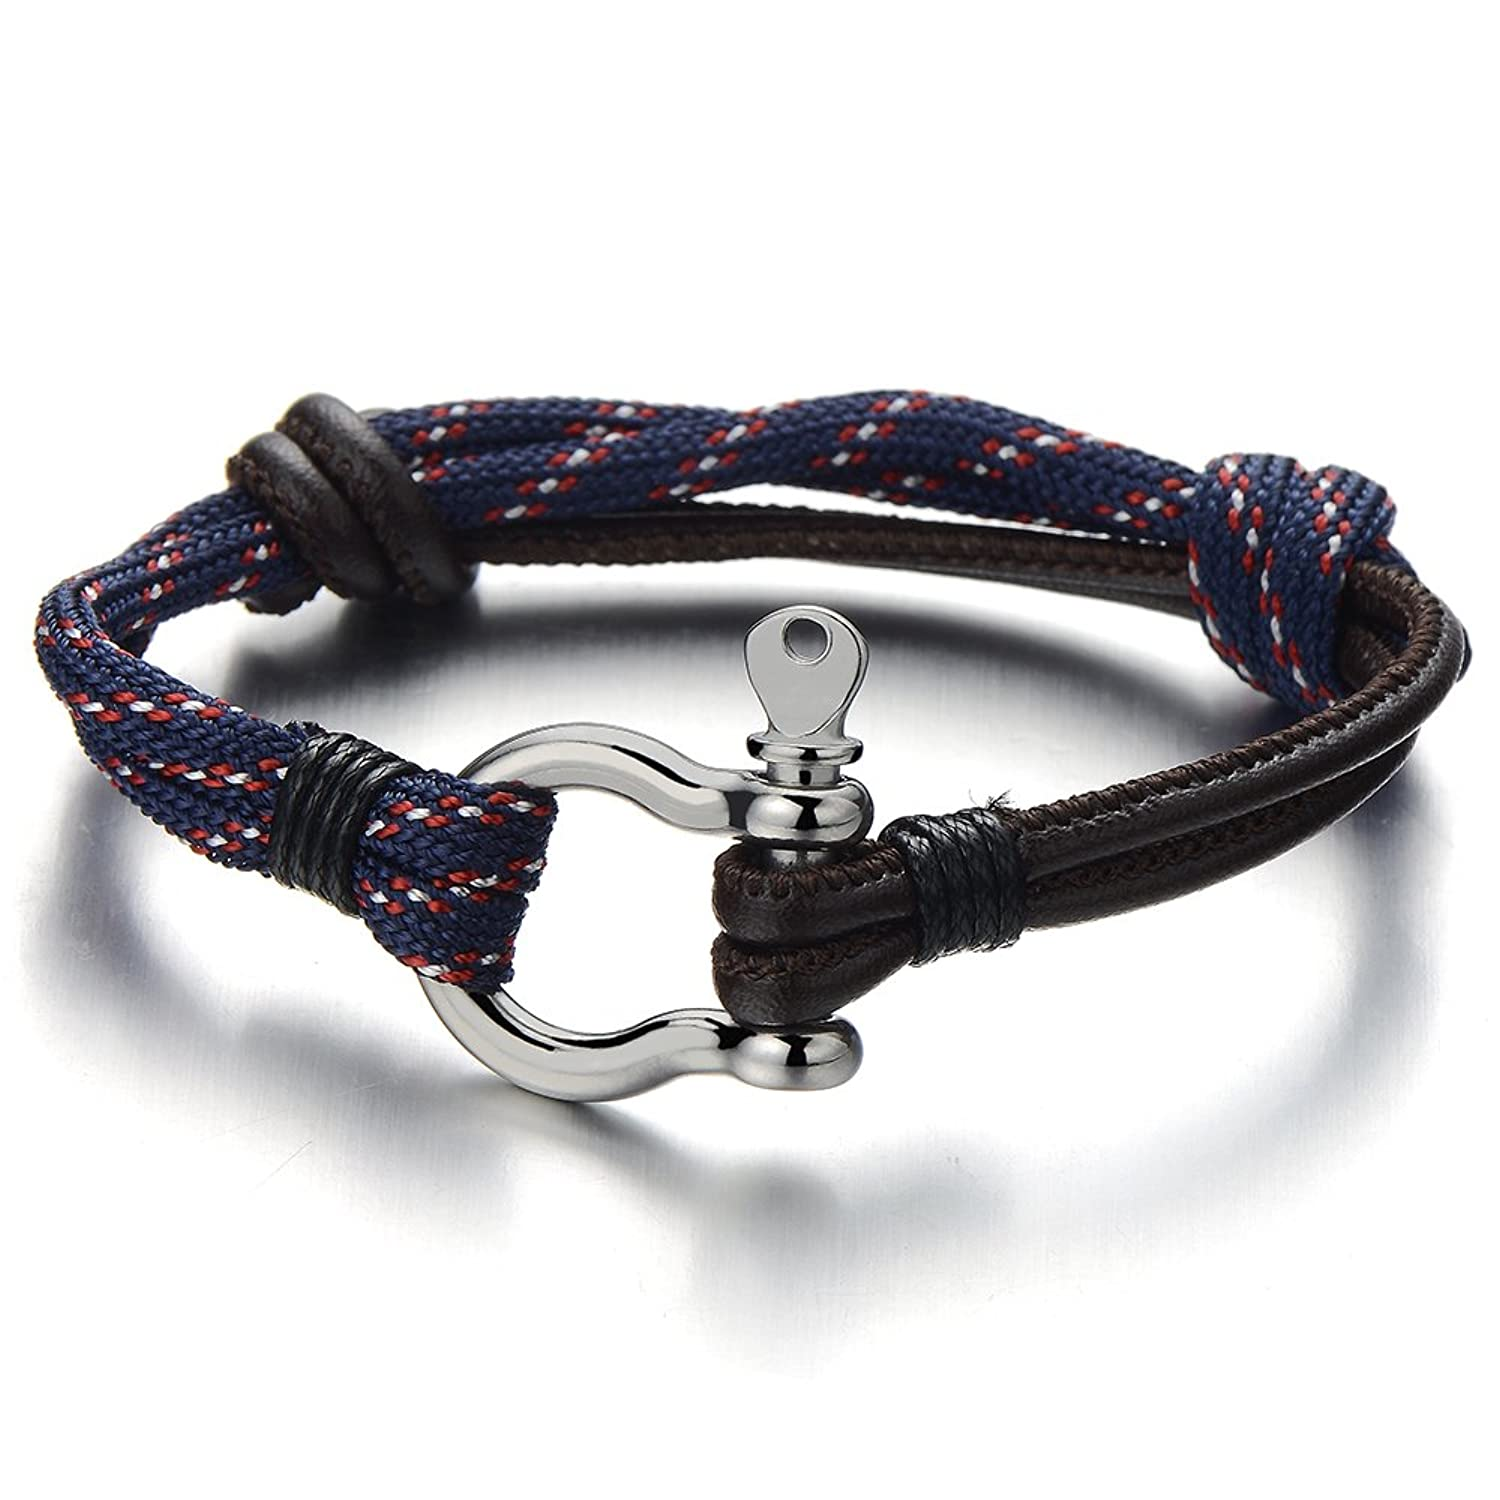 nautical mens small product moq see jewelry larger image bracelet rope navy fashion newest